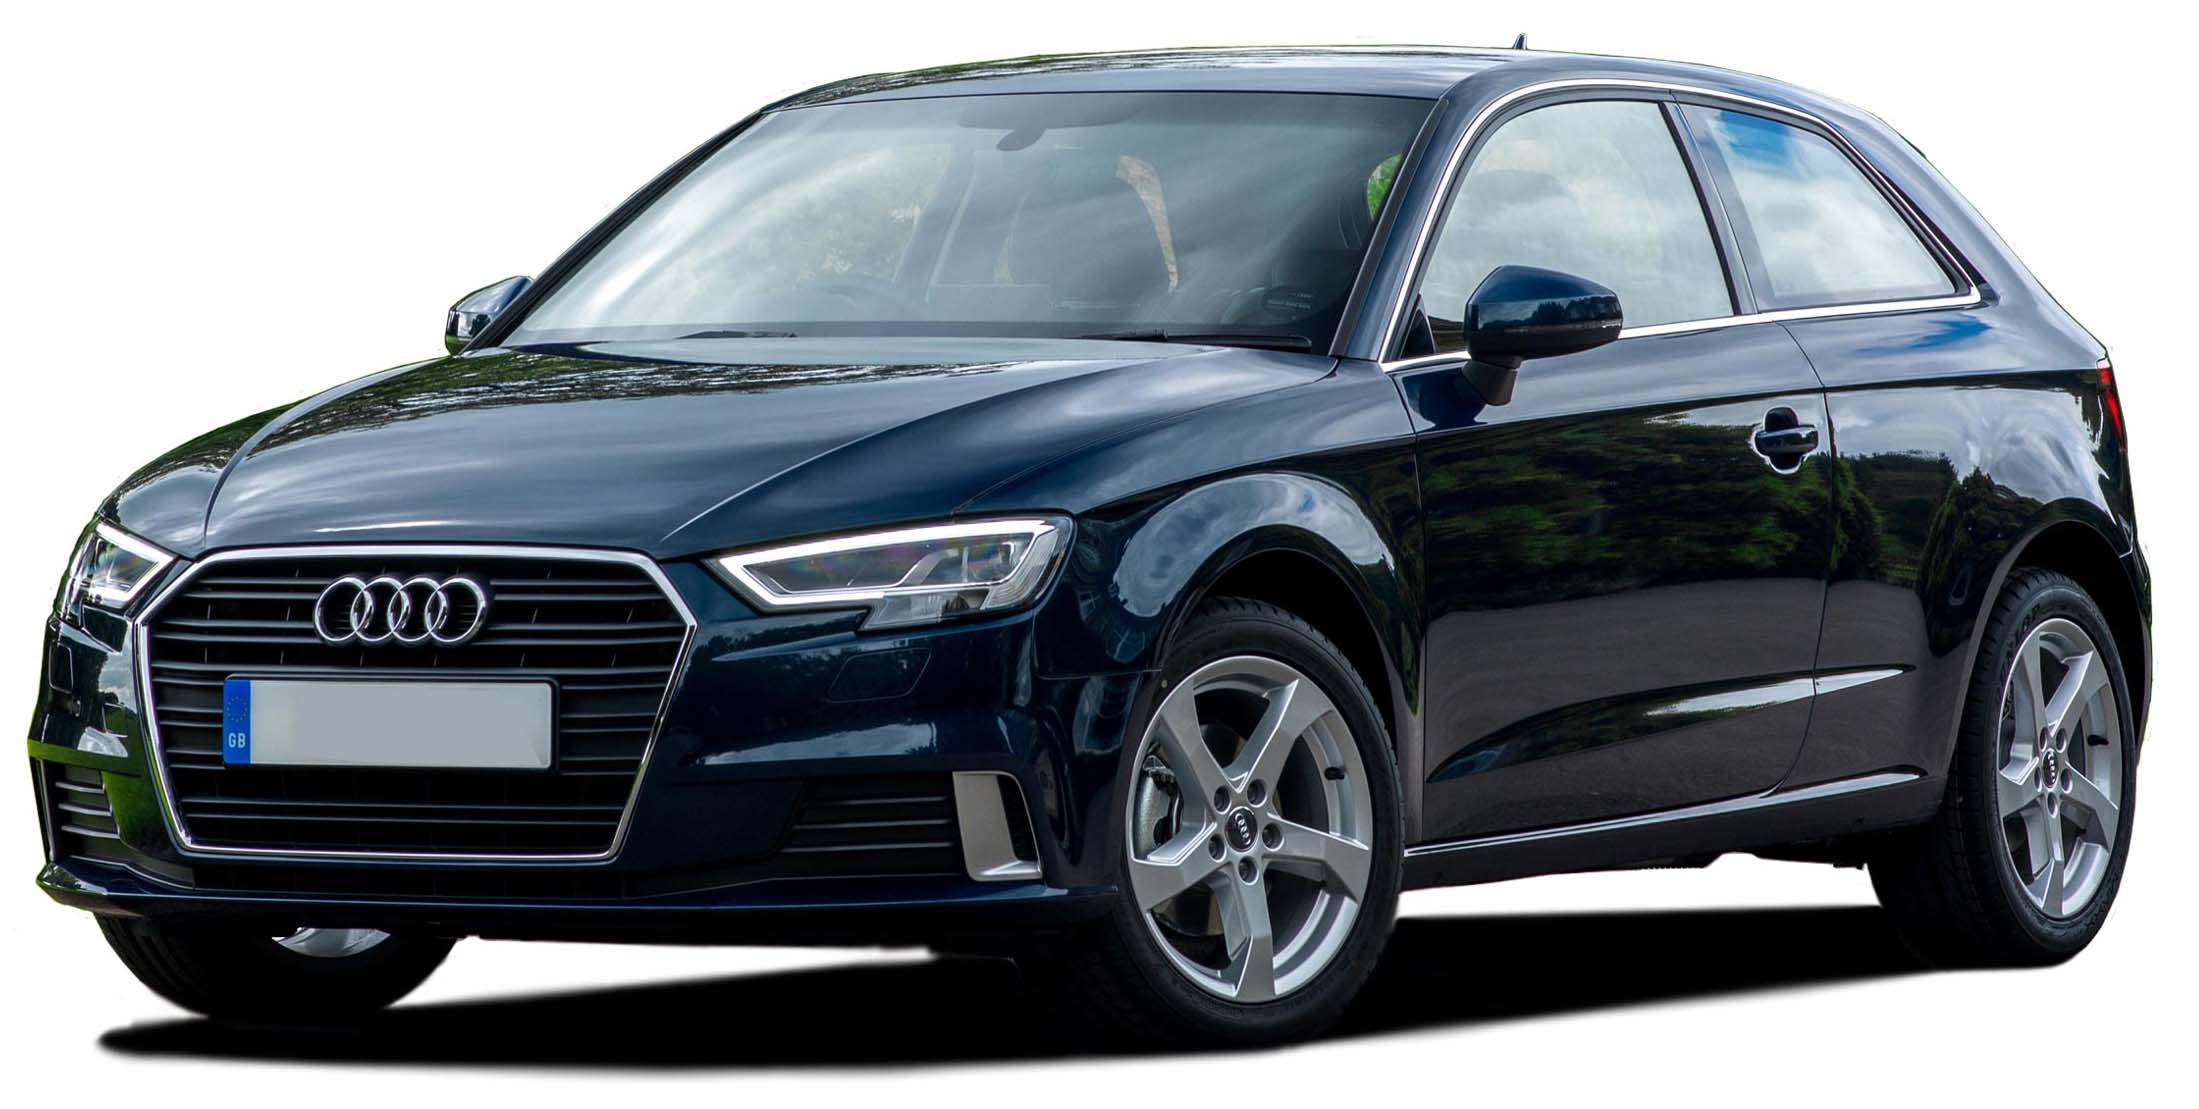 Le Meilleur Guardsman Audi A3 5 Door And 3 Door G1450 Ce Mois Ci